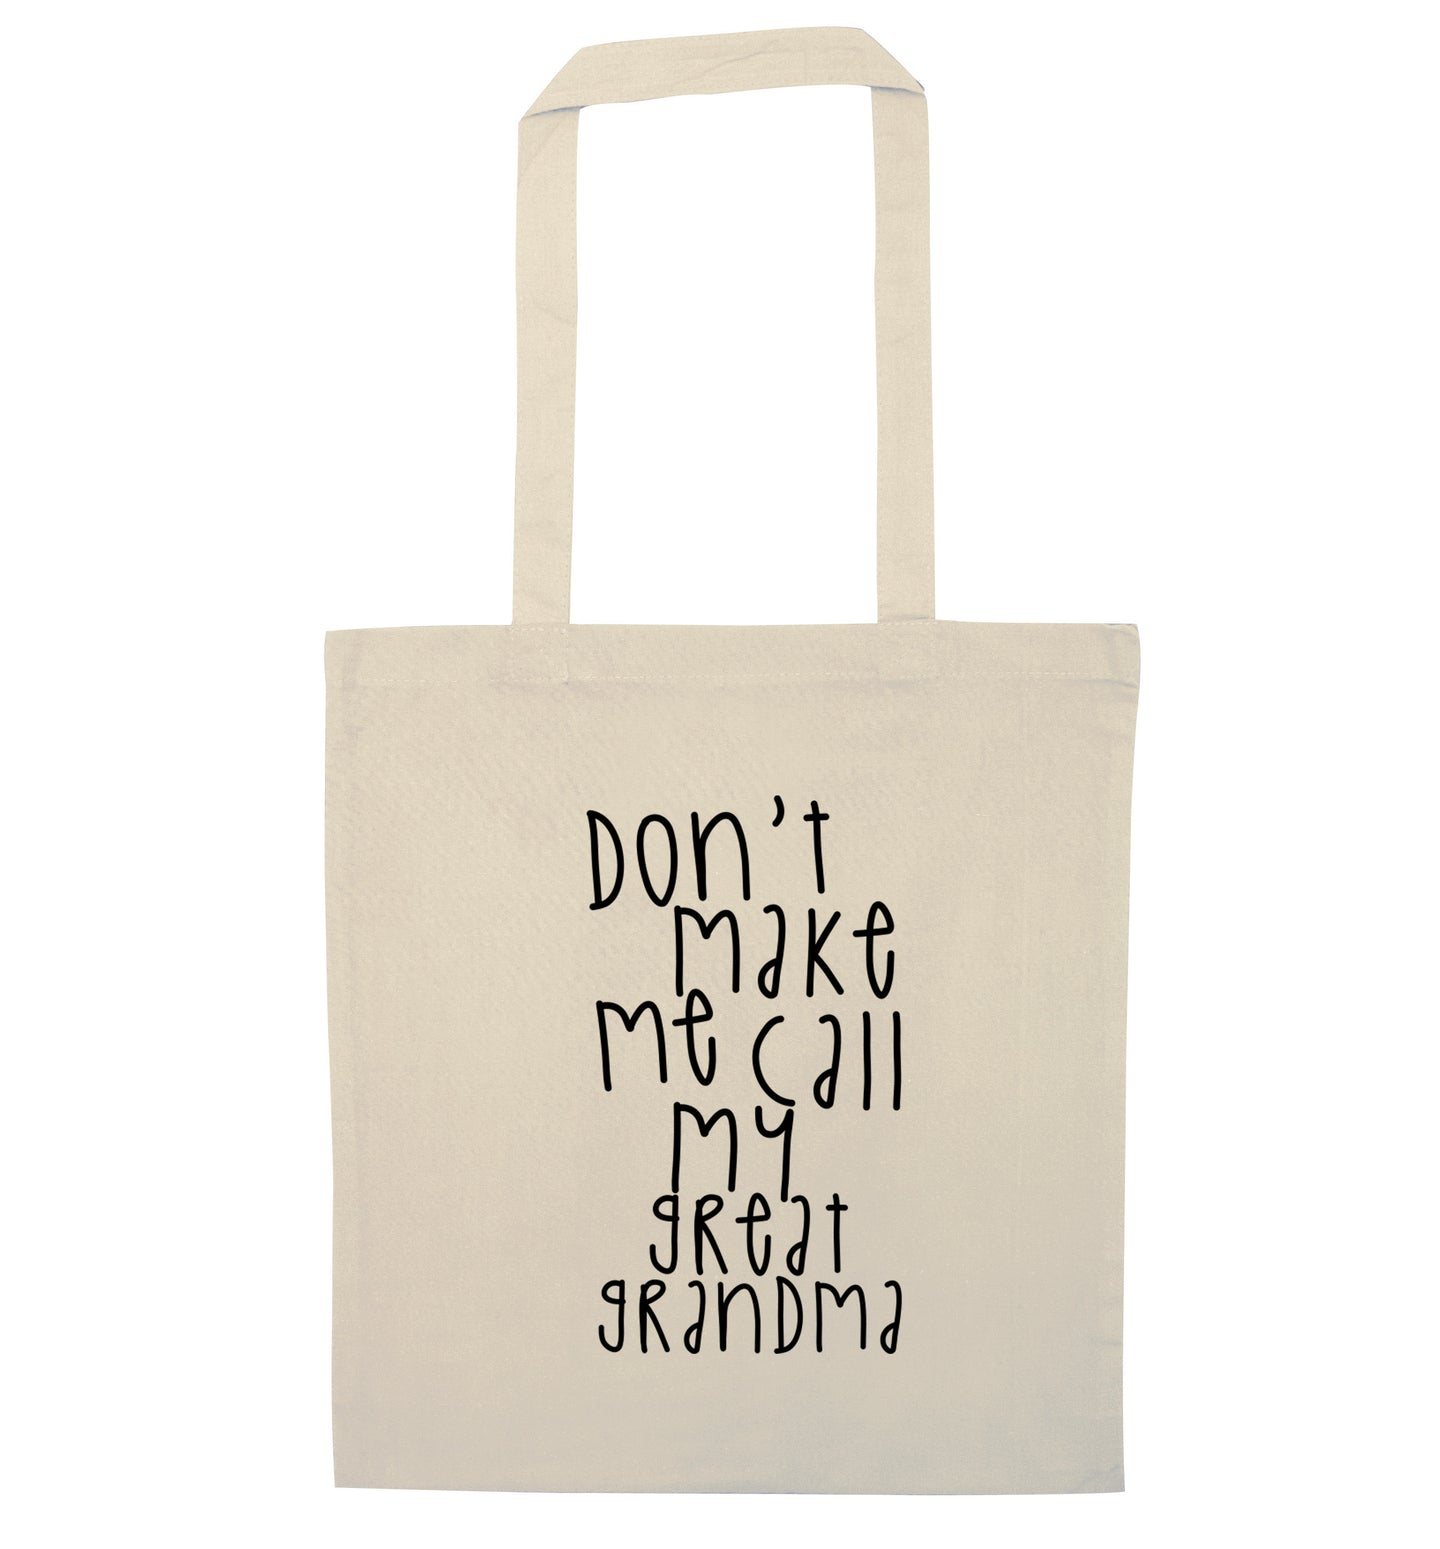 Don't make me call my great grandma natural tote bag